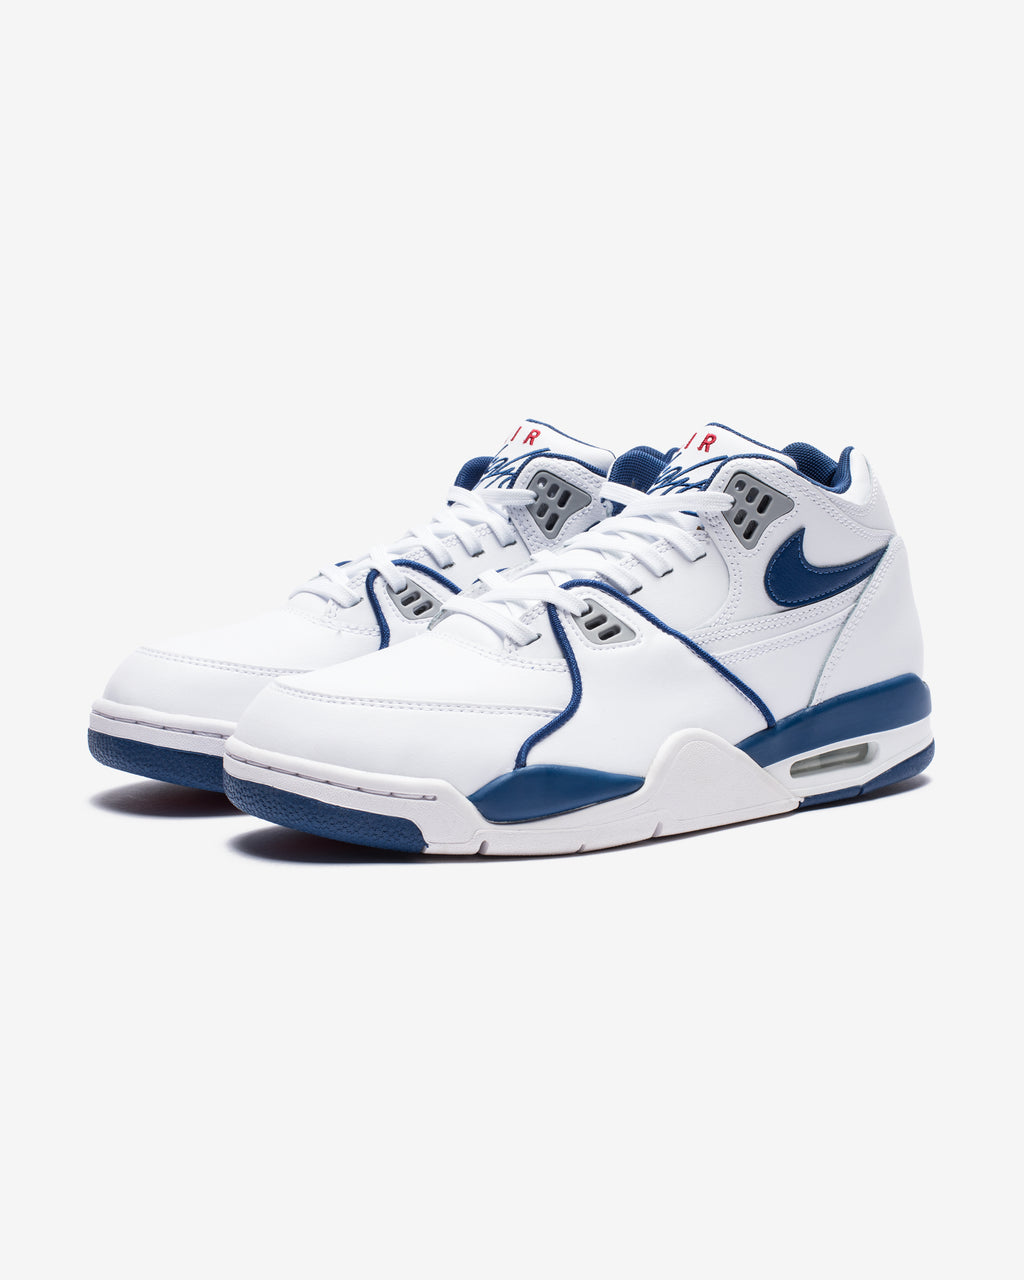 AIR FLIGHT 89 - WHITE/DARKROYALBLUE/VARSITYRED